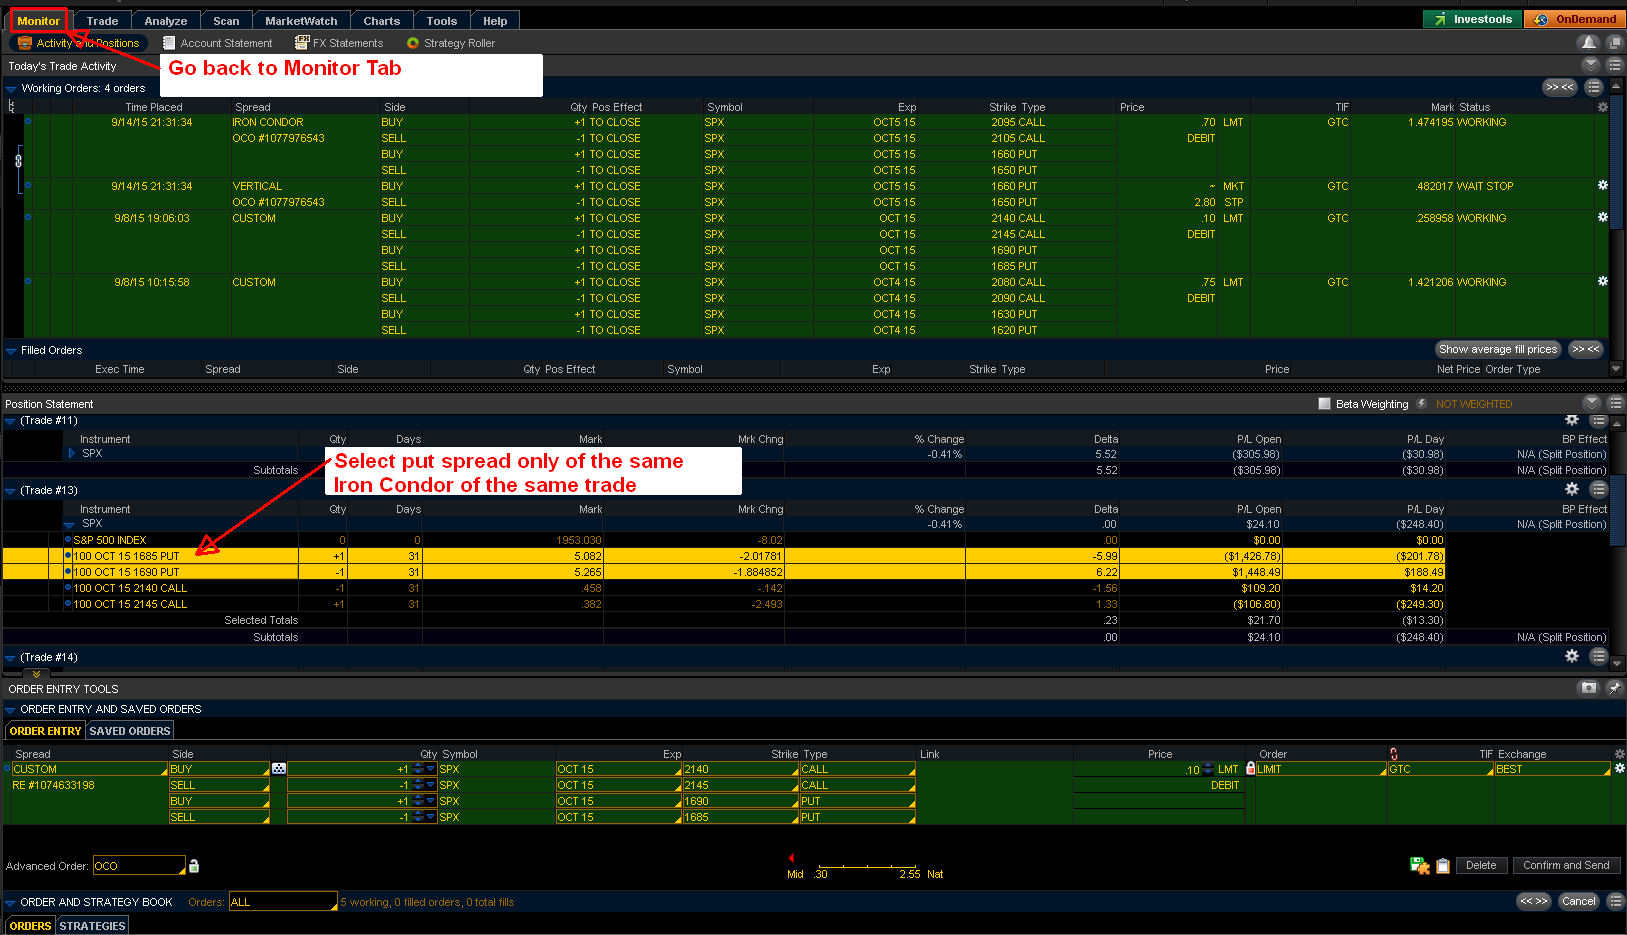 SPX puts closing only